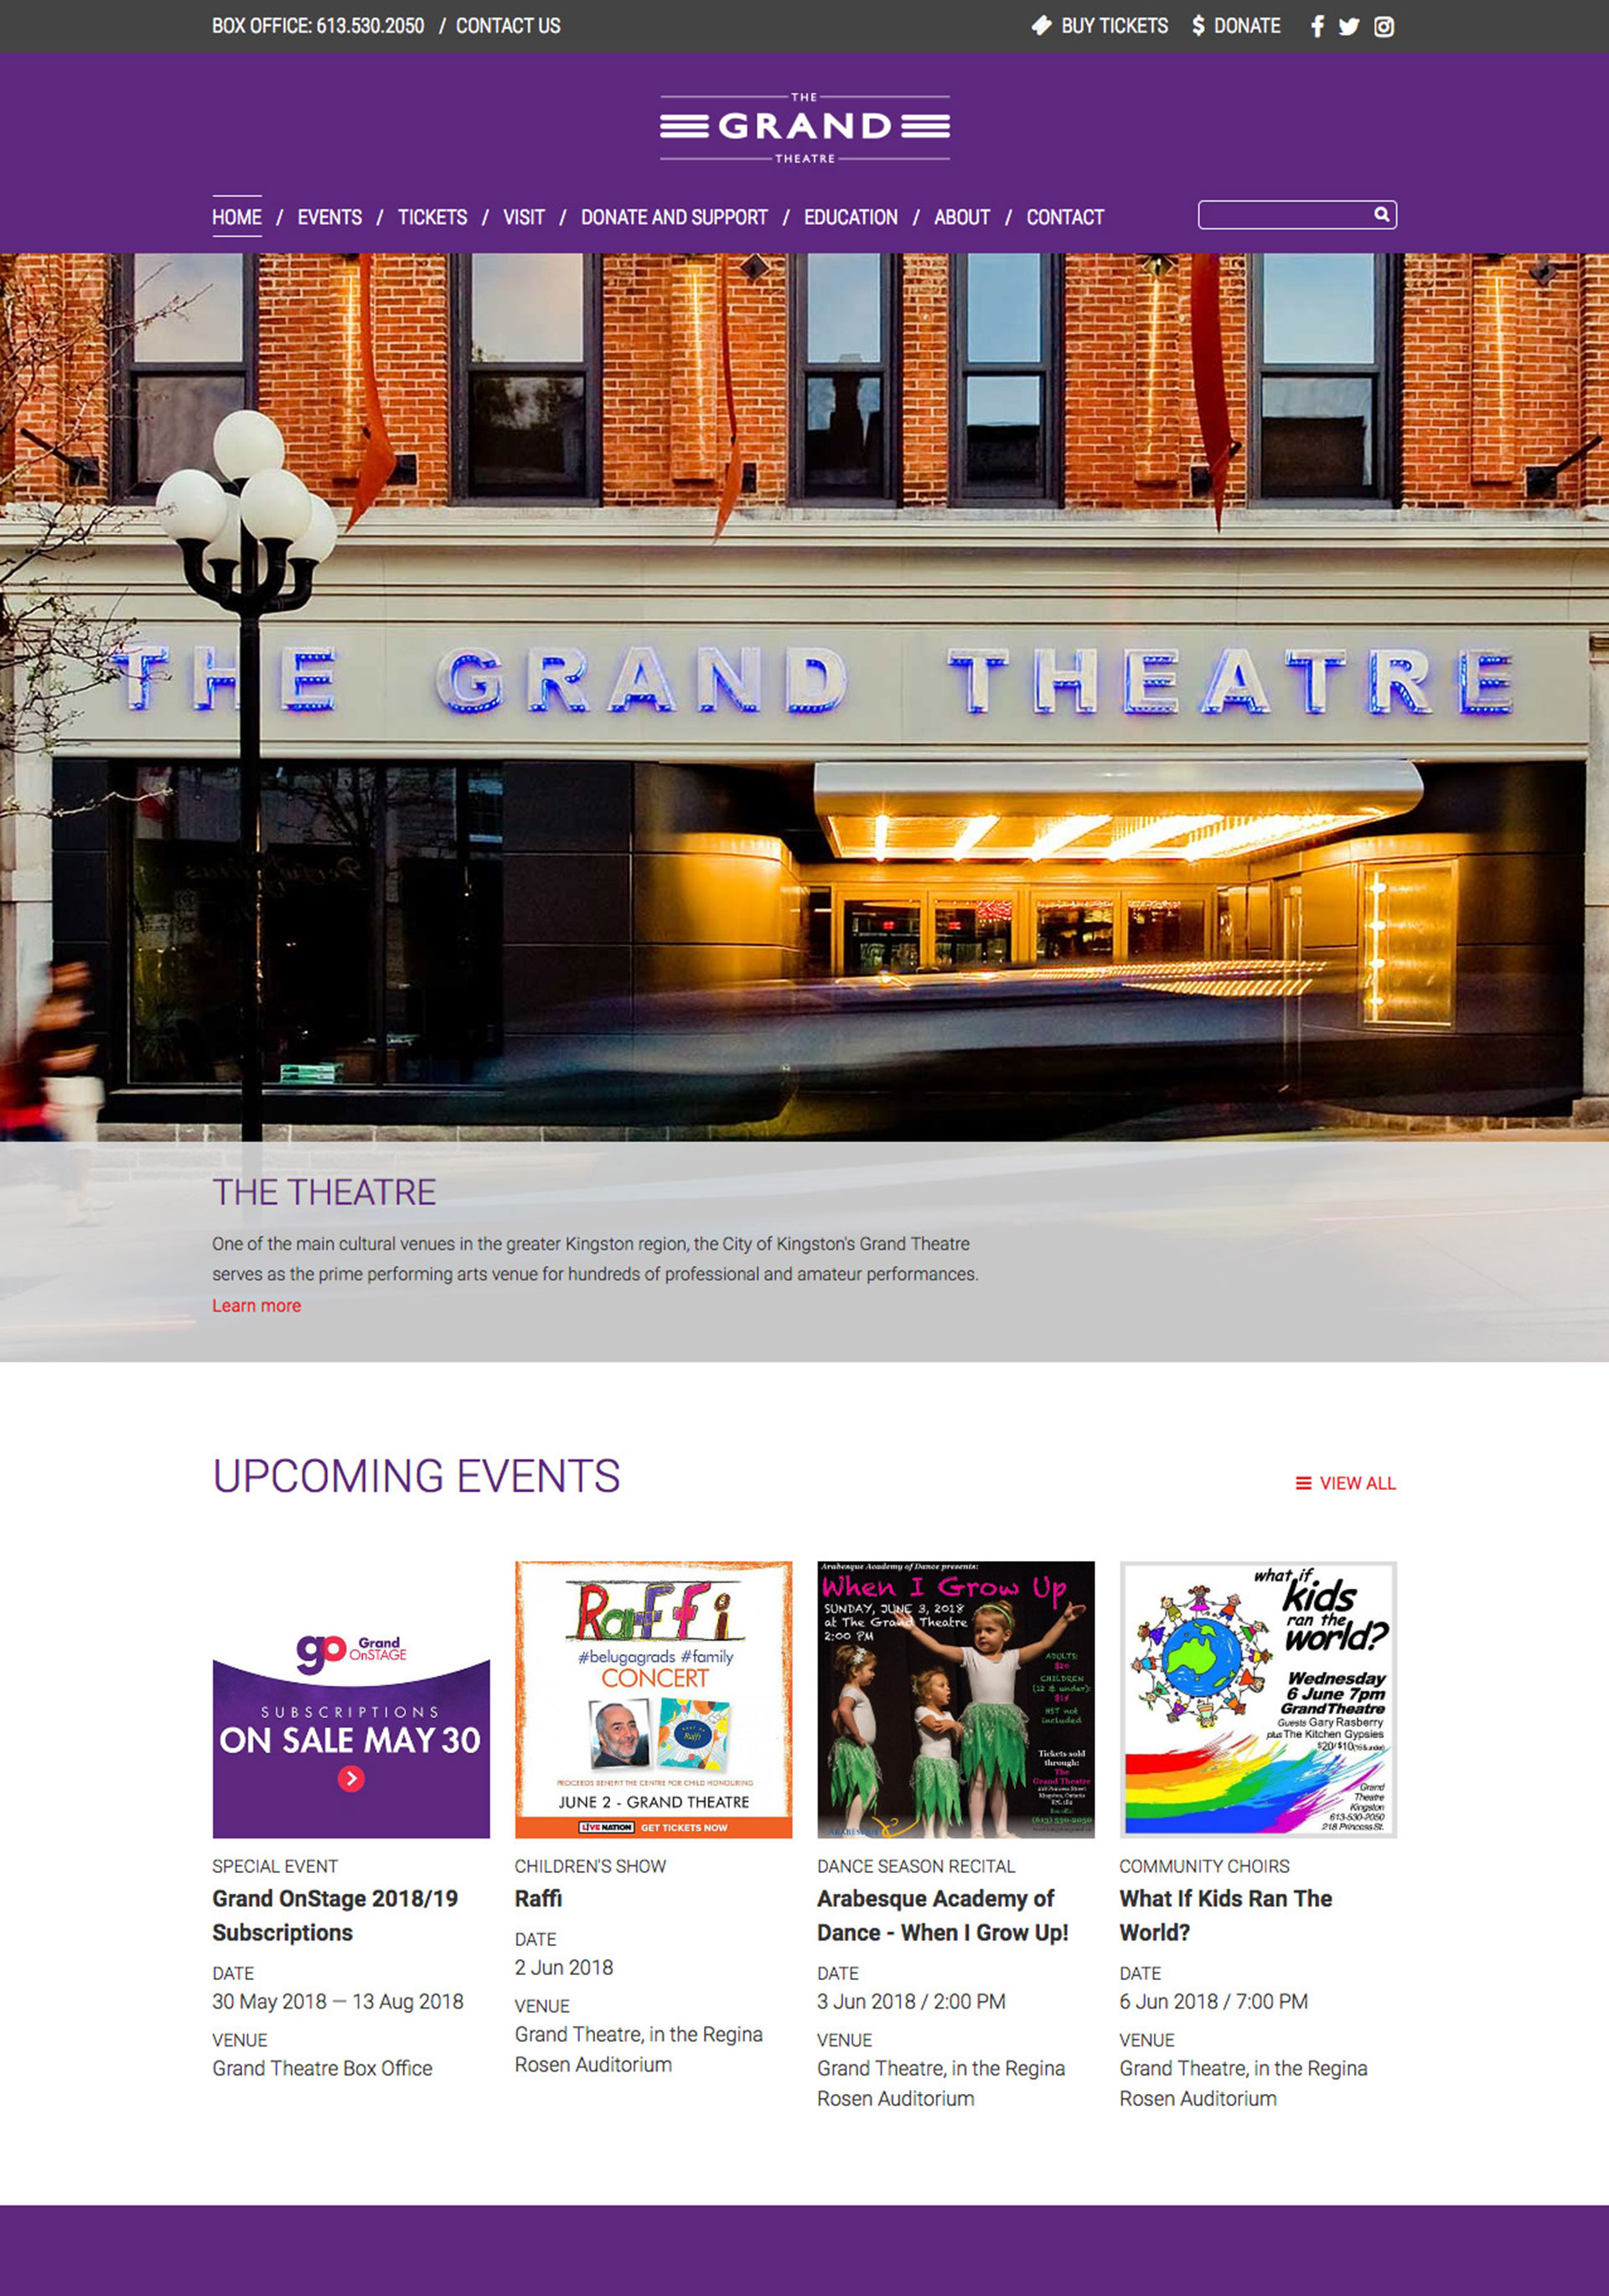 Grand Theatre Website Redesign